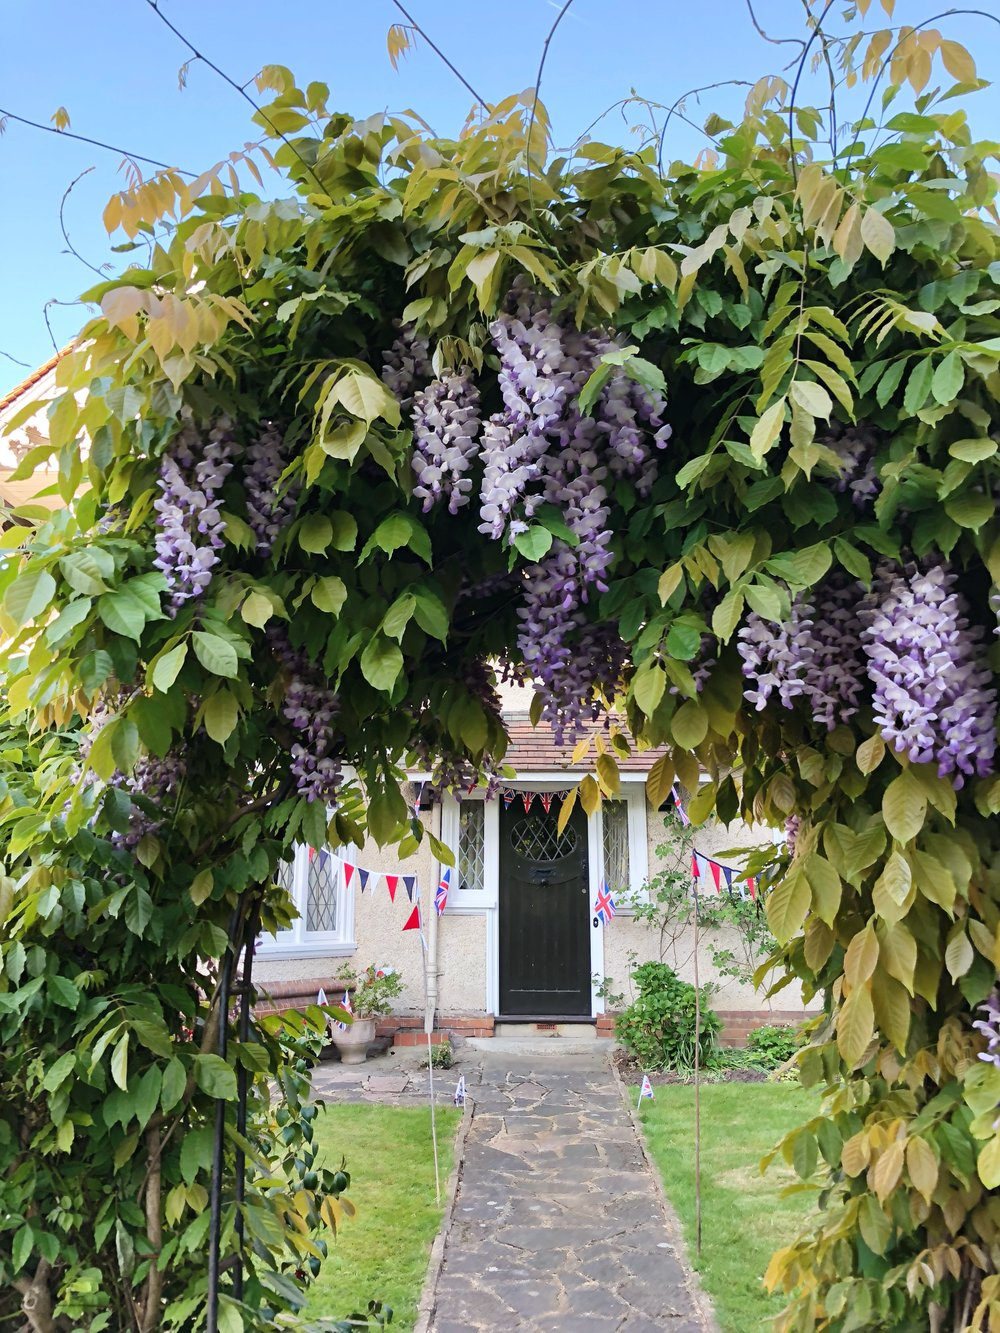 Windsor, Berkshire, England, UK, Royal Wedding, Wisteria